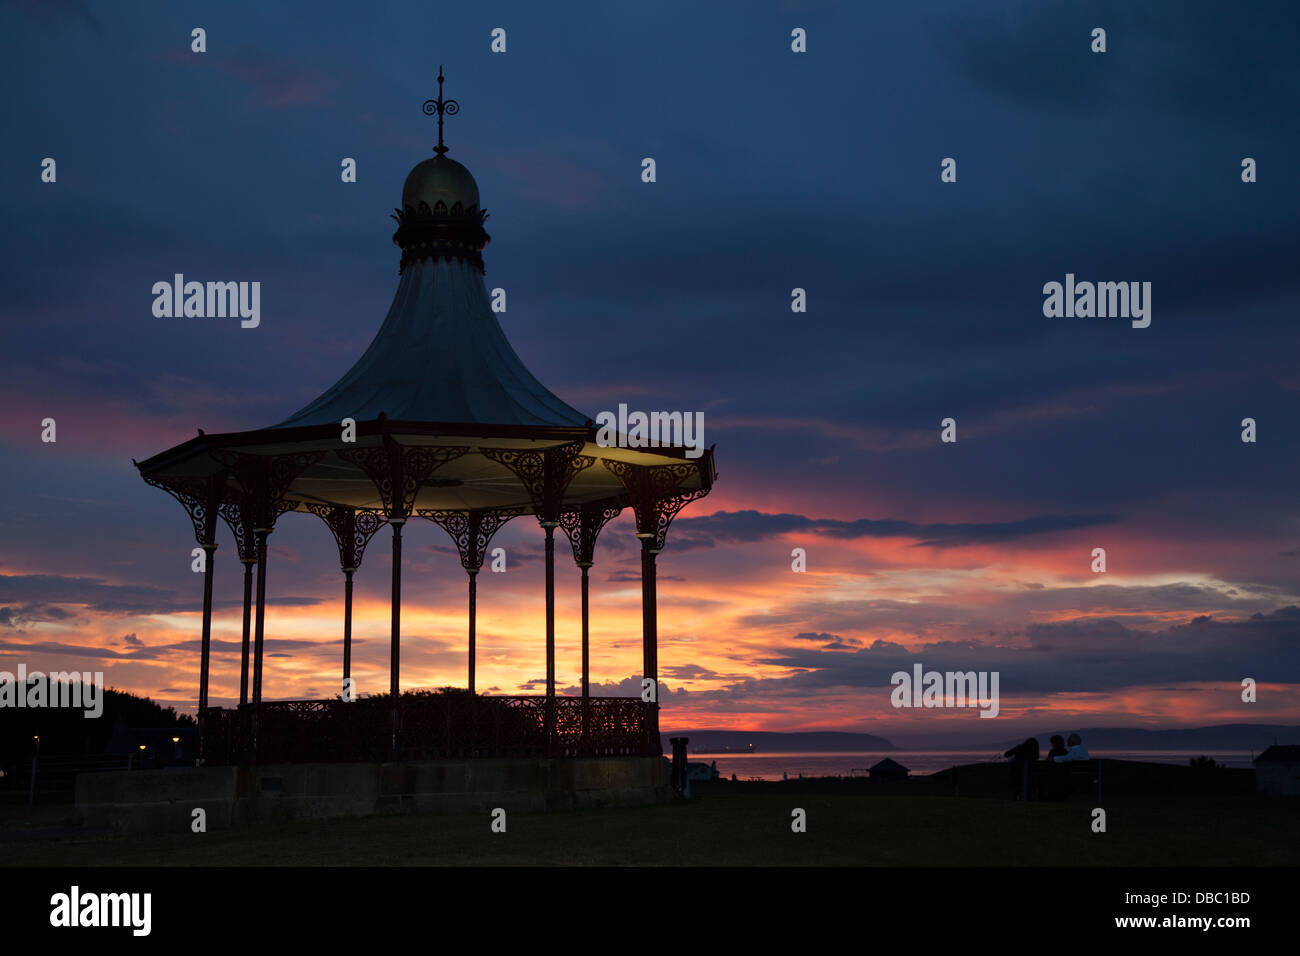 Nairn beach, bandstand & Pavilion on the Moray firth at sunset, Invernesshire, Scotland, UK - Stock Image